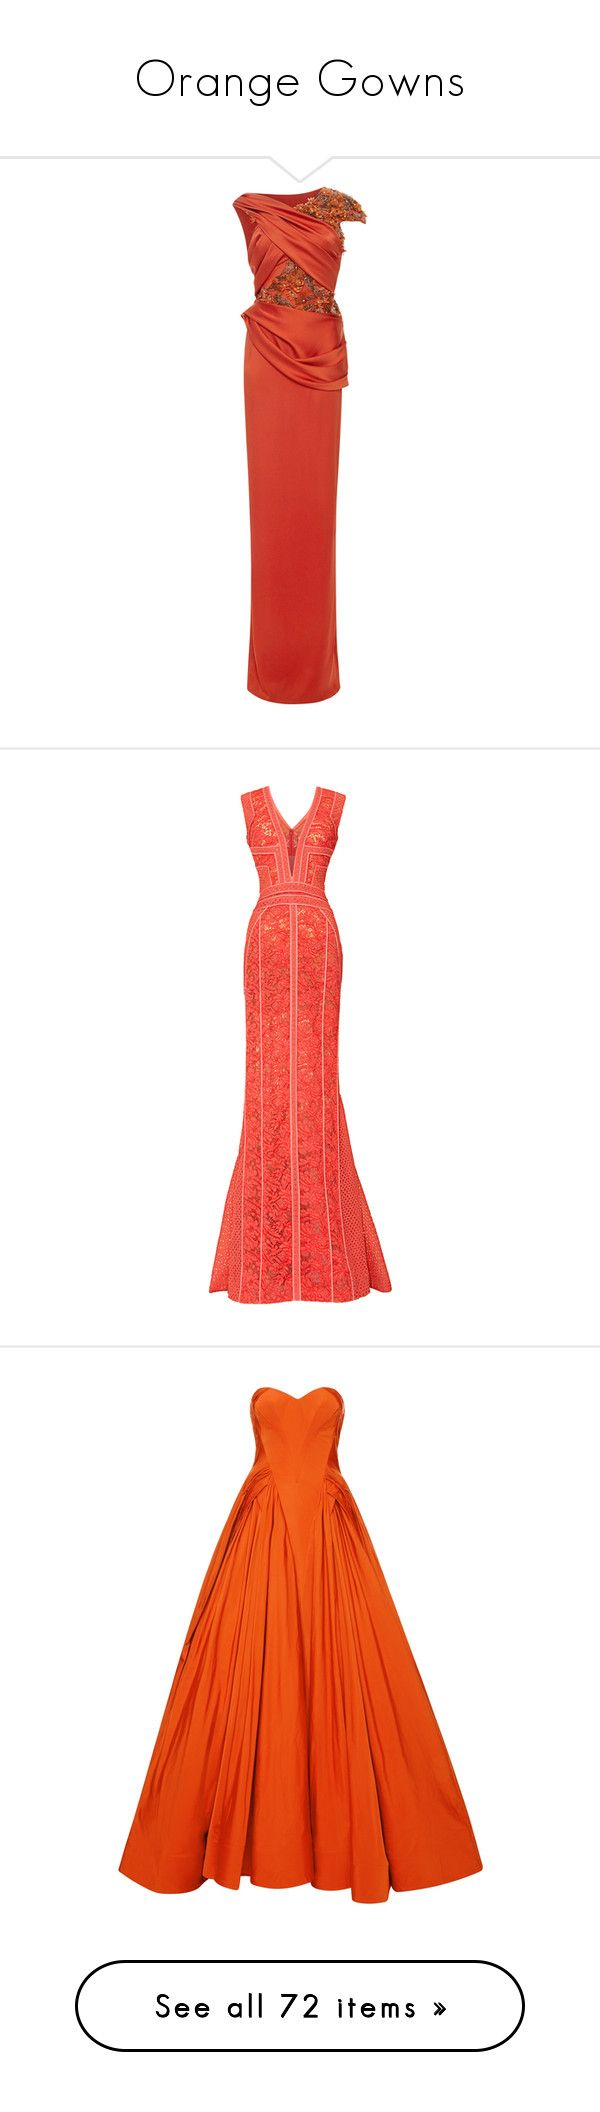 """Orange Gowns"" by sakuragirl ❤ liked on Polyvore featuring dresses, gowns, gown, red embroidered dress, marchesa gowns, marchesa dresses, embroidered dress, red gown, long dresses and vestidos"